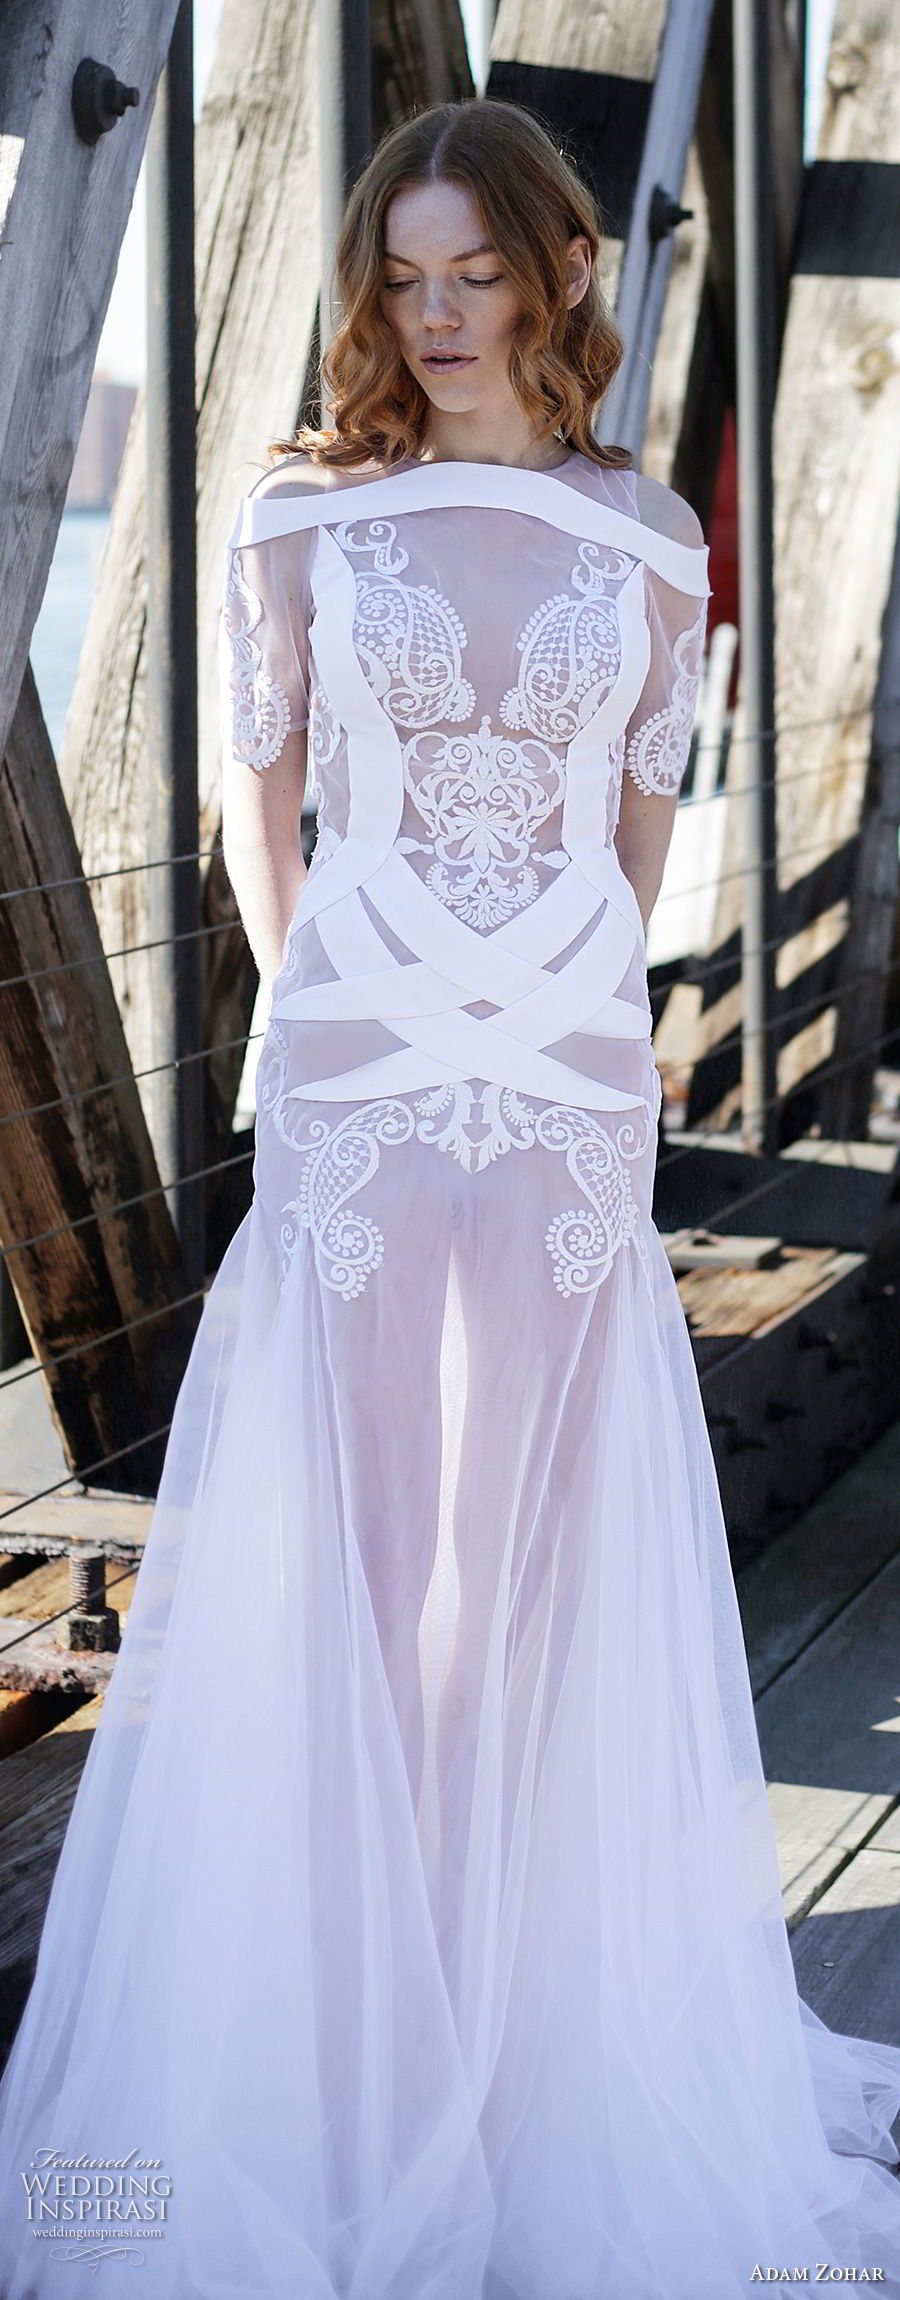 adam zohar 2017 bridal short sleeves sheer jewel sweetheart neckline heavilyembellished drop waist elegant a line wedding dress keyhole back sweep train (11) mv